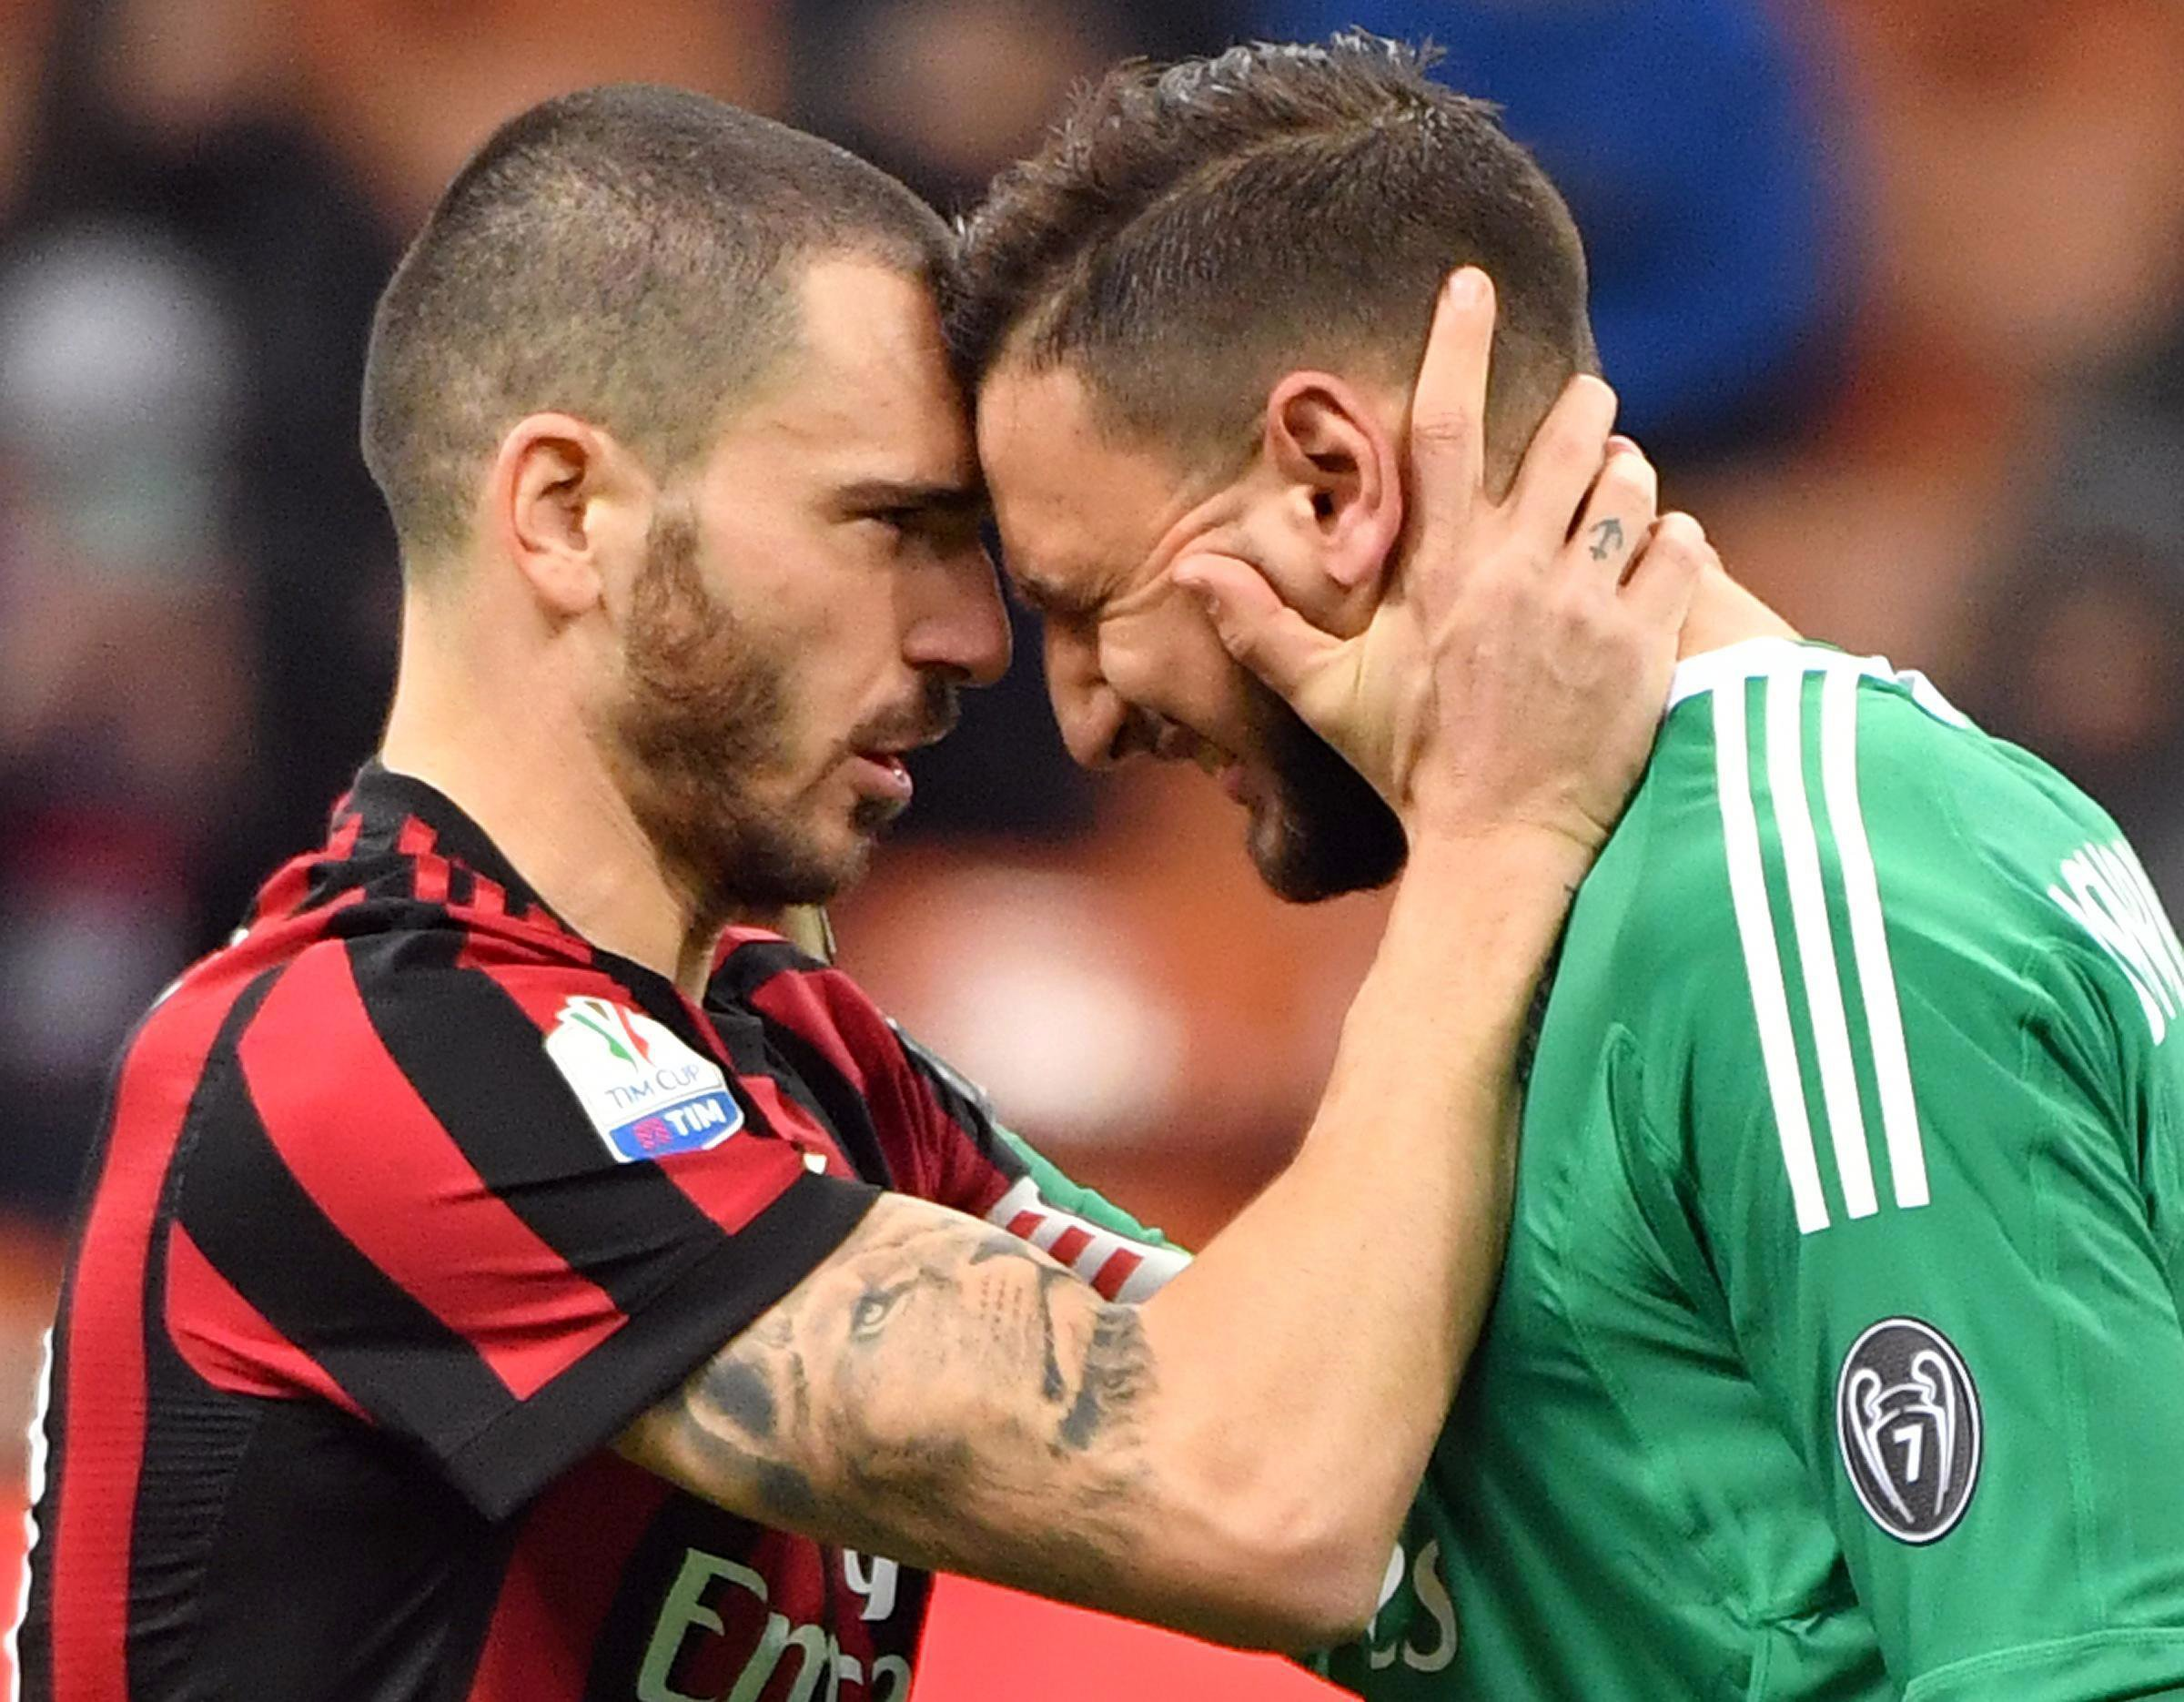 Gianluigi Donnarumma in tears after being insulted by AC Milan ultras